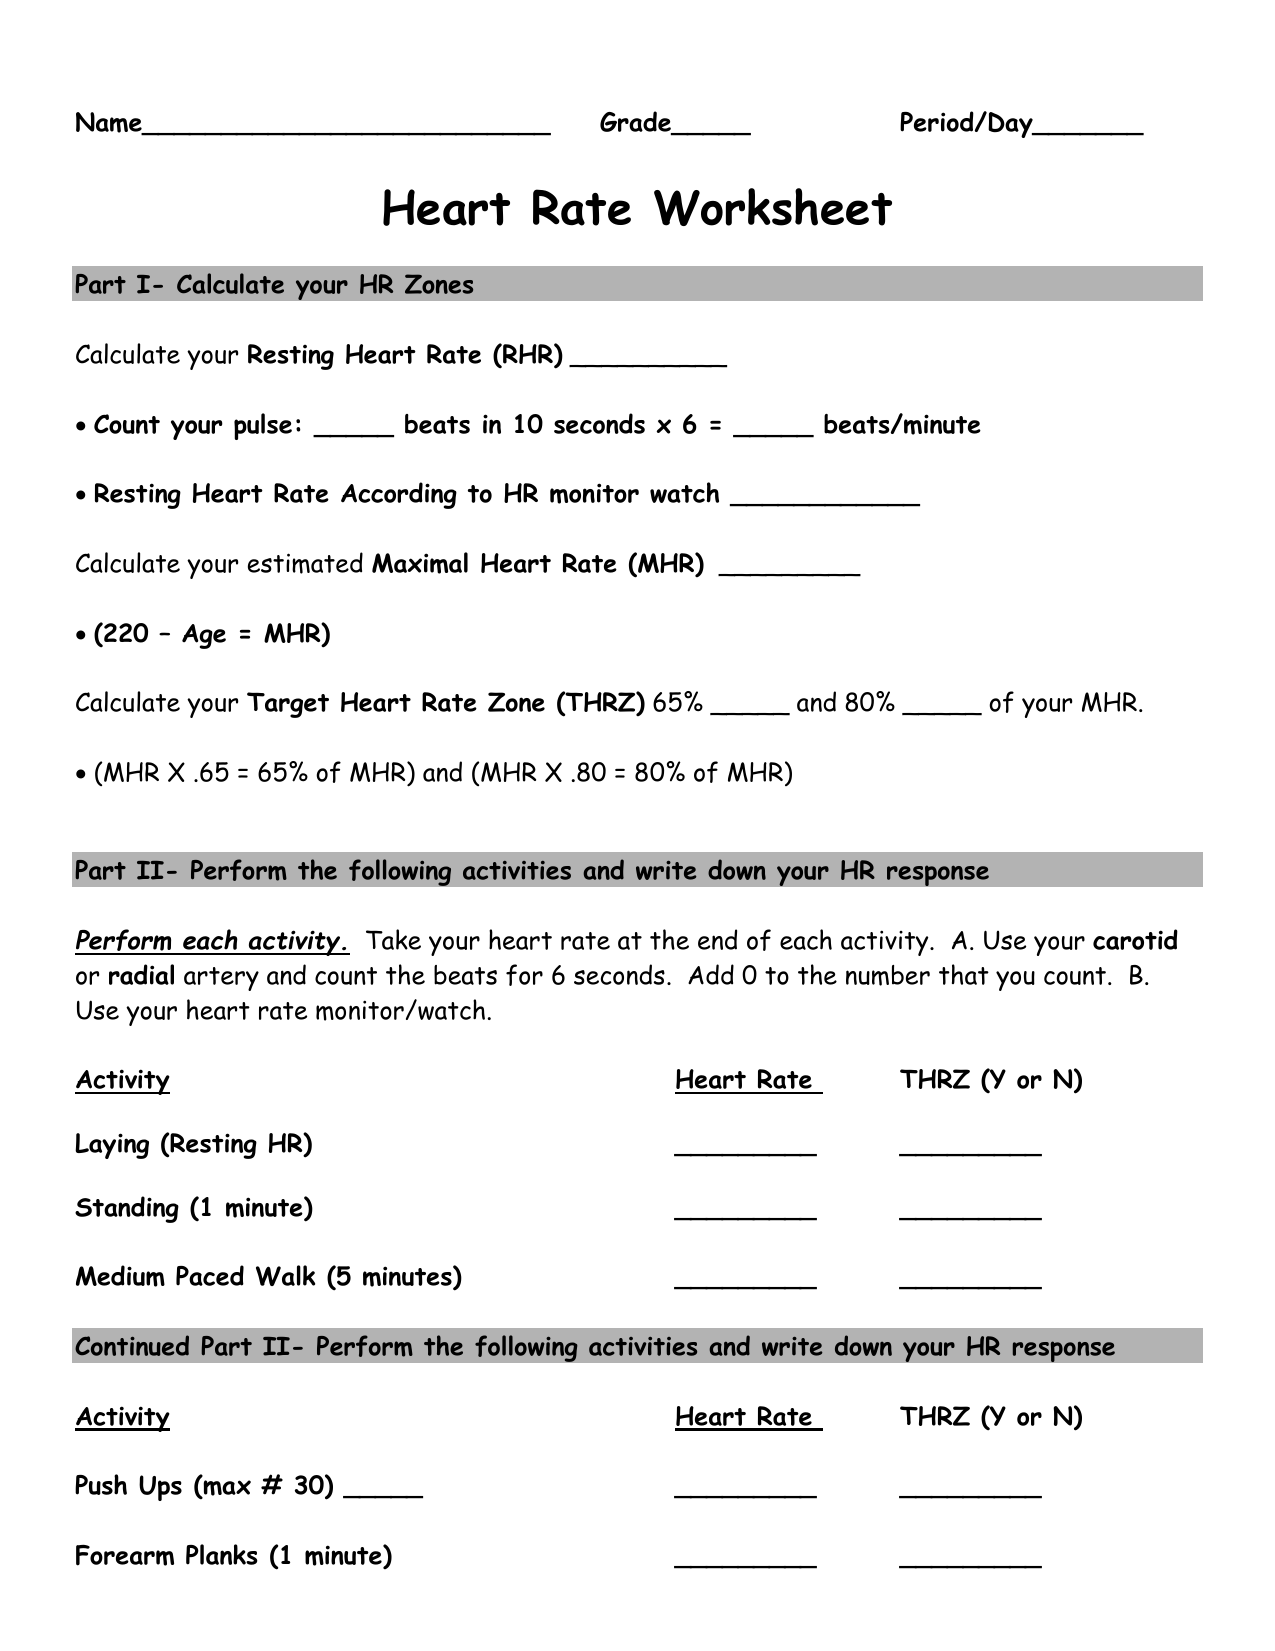 Heart Rate Activity Worksheet - Belle Vernon Area School District    Physical education lessons [ 1651 x 1275 Pixel ]